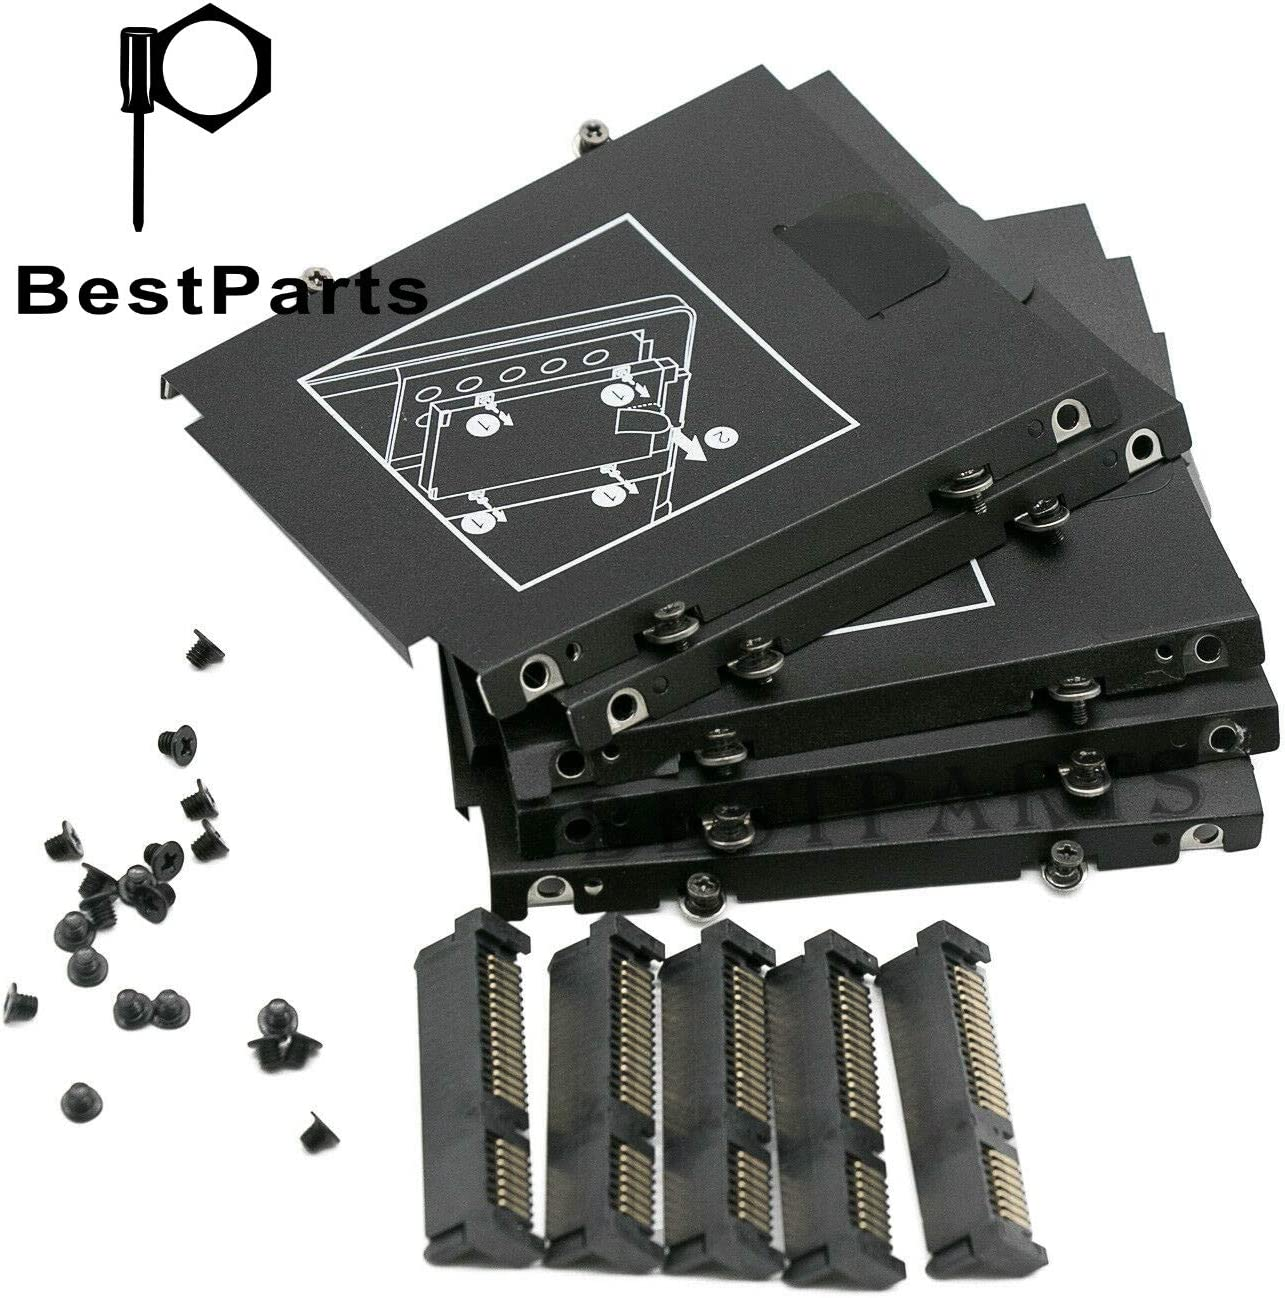 5PCS Kit BestParts for HP EliteBook Folio 9470M 9480M 9460M 9470 9480 Hard Drive Caddy Bracket +HDD SATA Connector